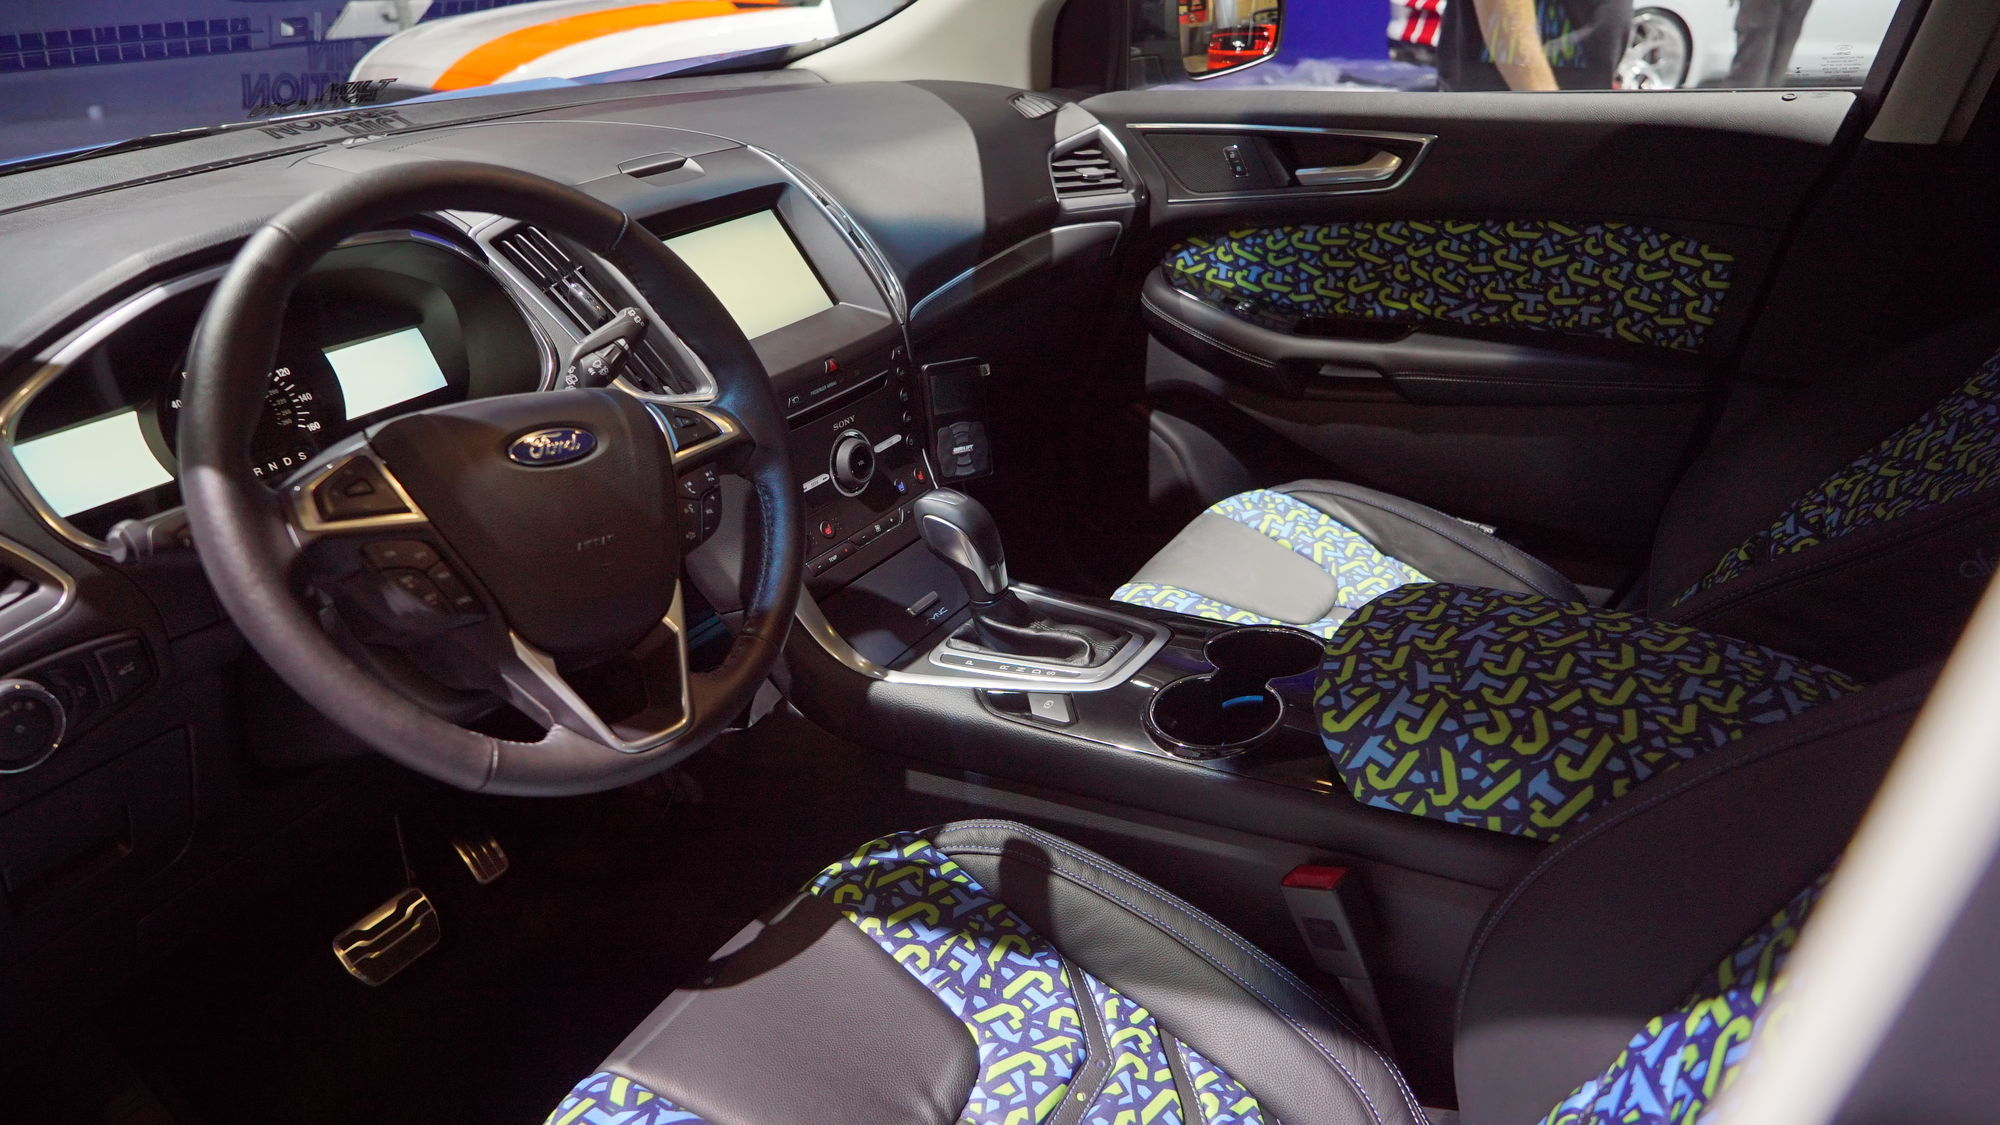 2015 Ford Edge | '15 Ford Edge by Tjin Edition - Interior Close Up